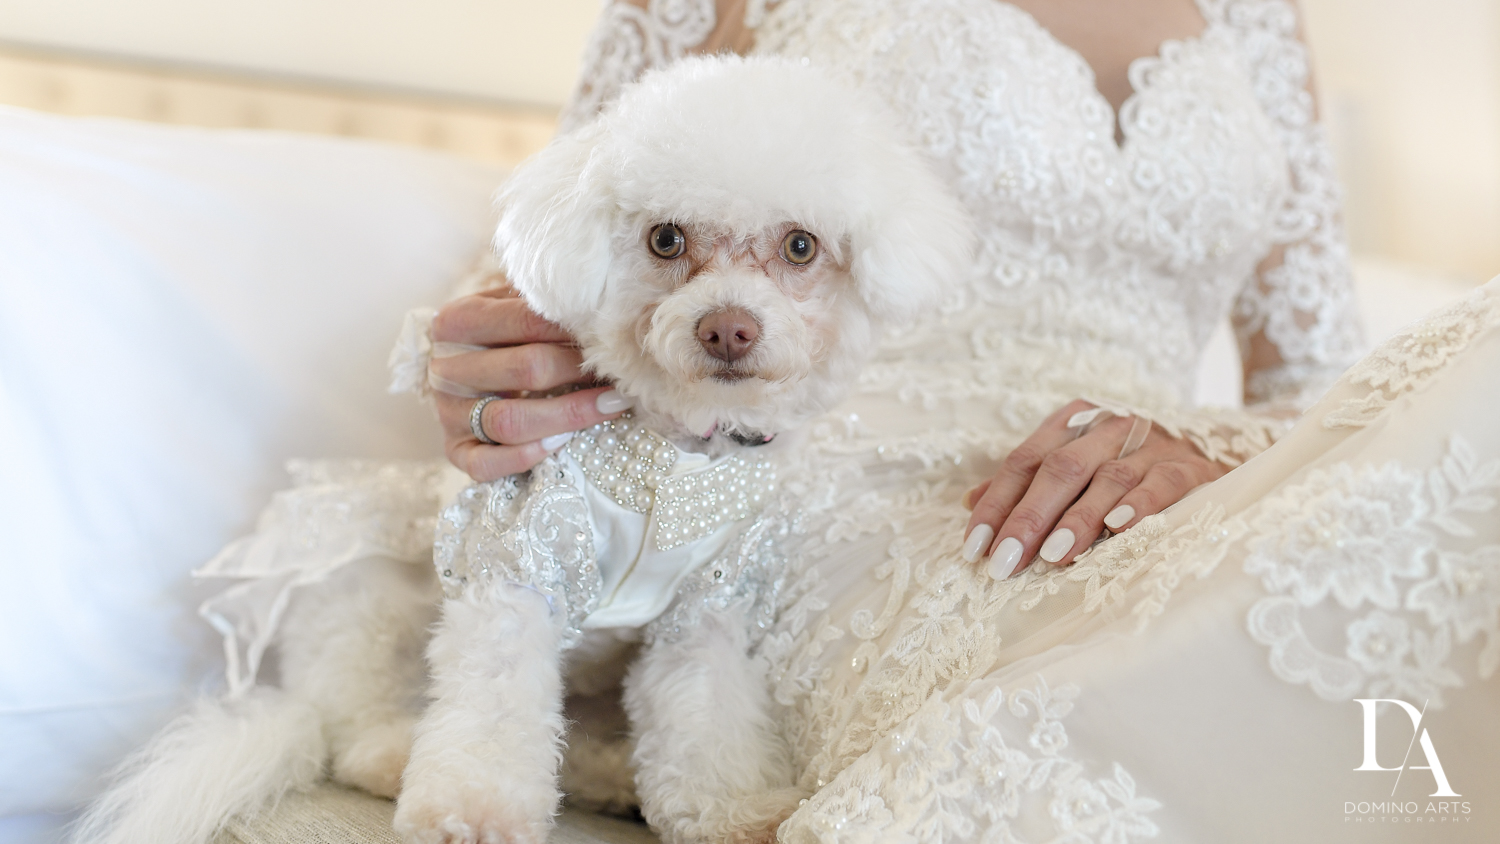 poodle at Classic & Elegant Wedding Photography at Fisher Island Miami by Domino Arts Photography